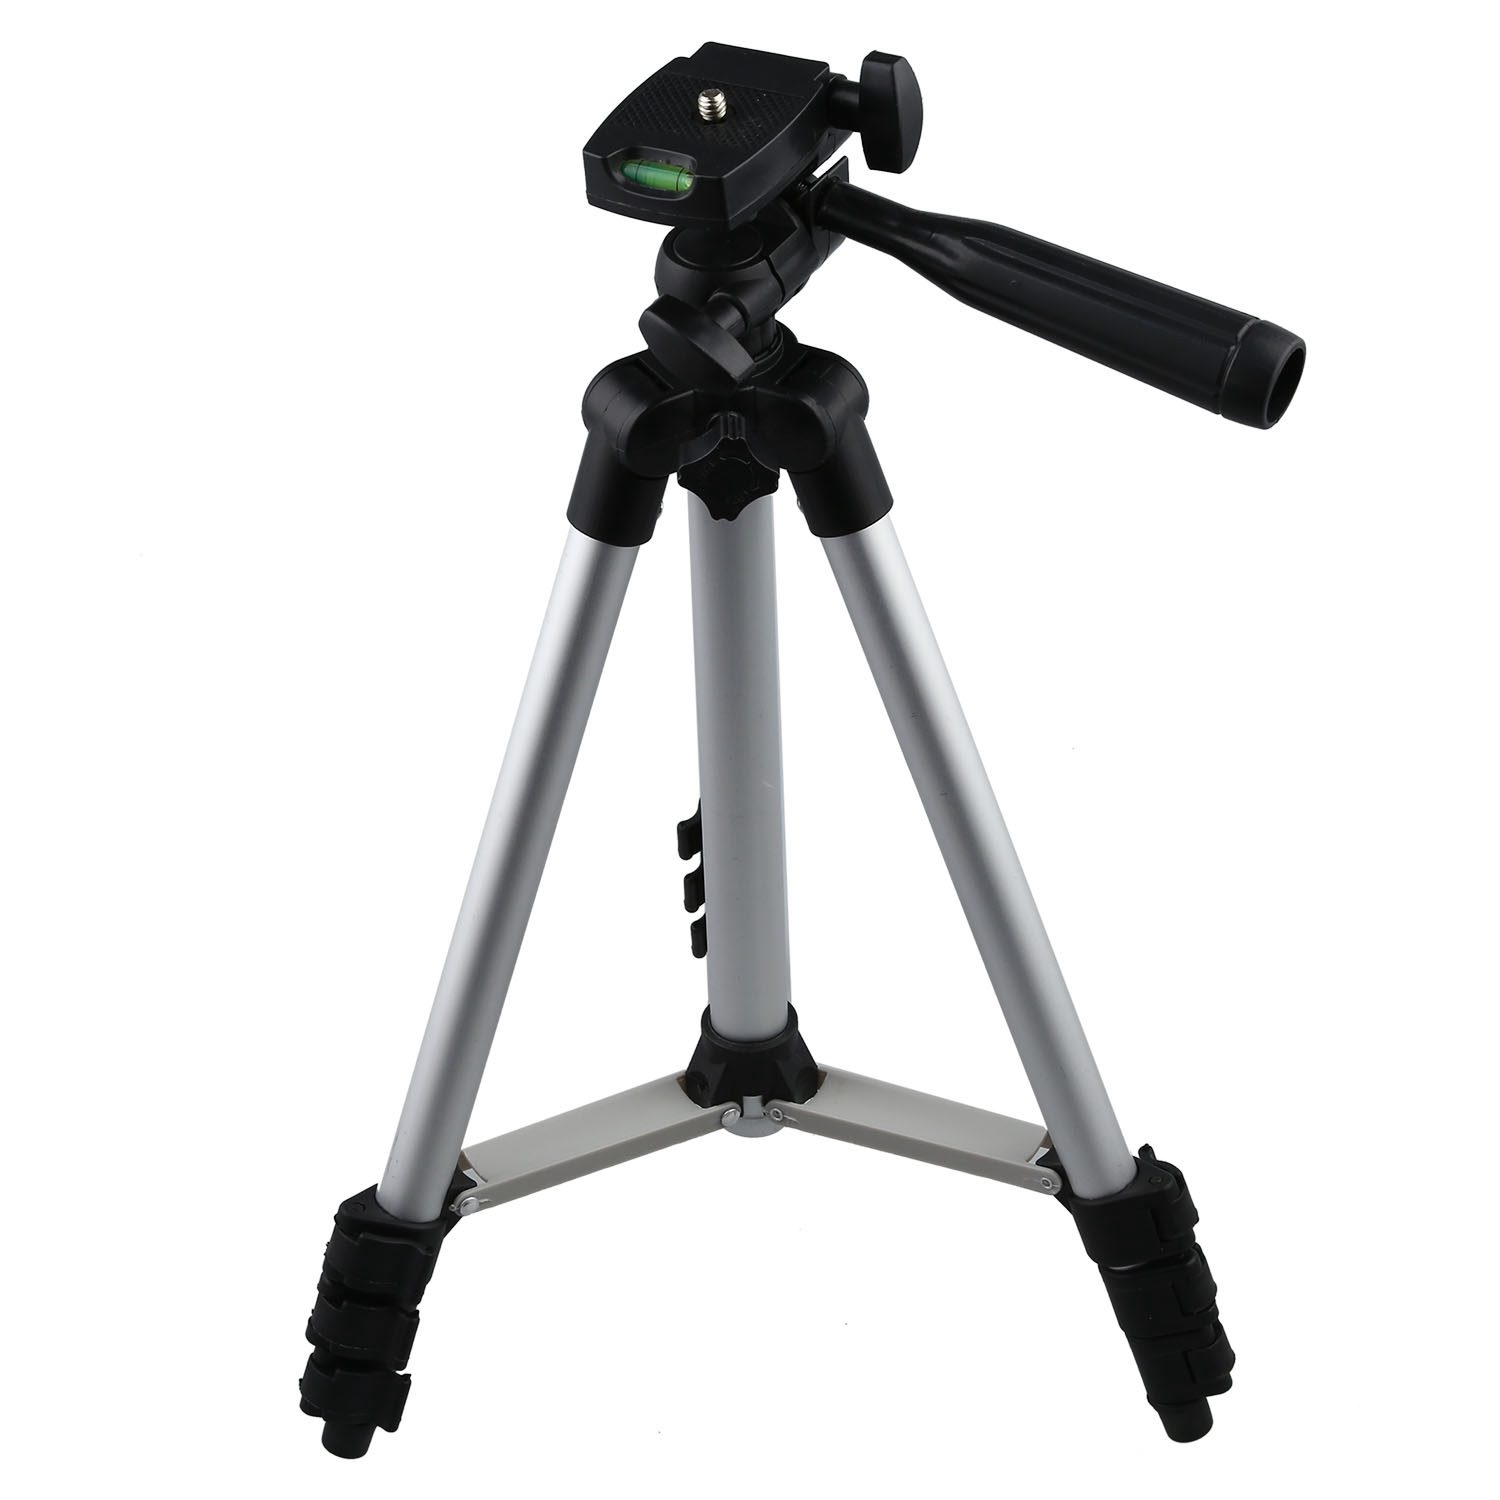 все цены на Professional Adjustable Tripod Aluminum Camera Stand 3110 Aluminum alloy tripod digital camera tripod card machine stand онлайн